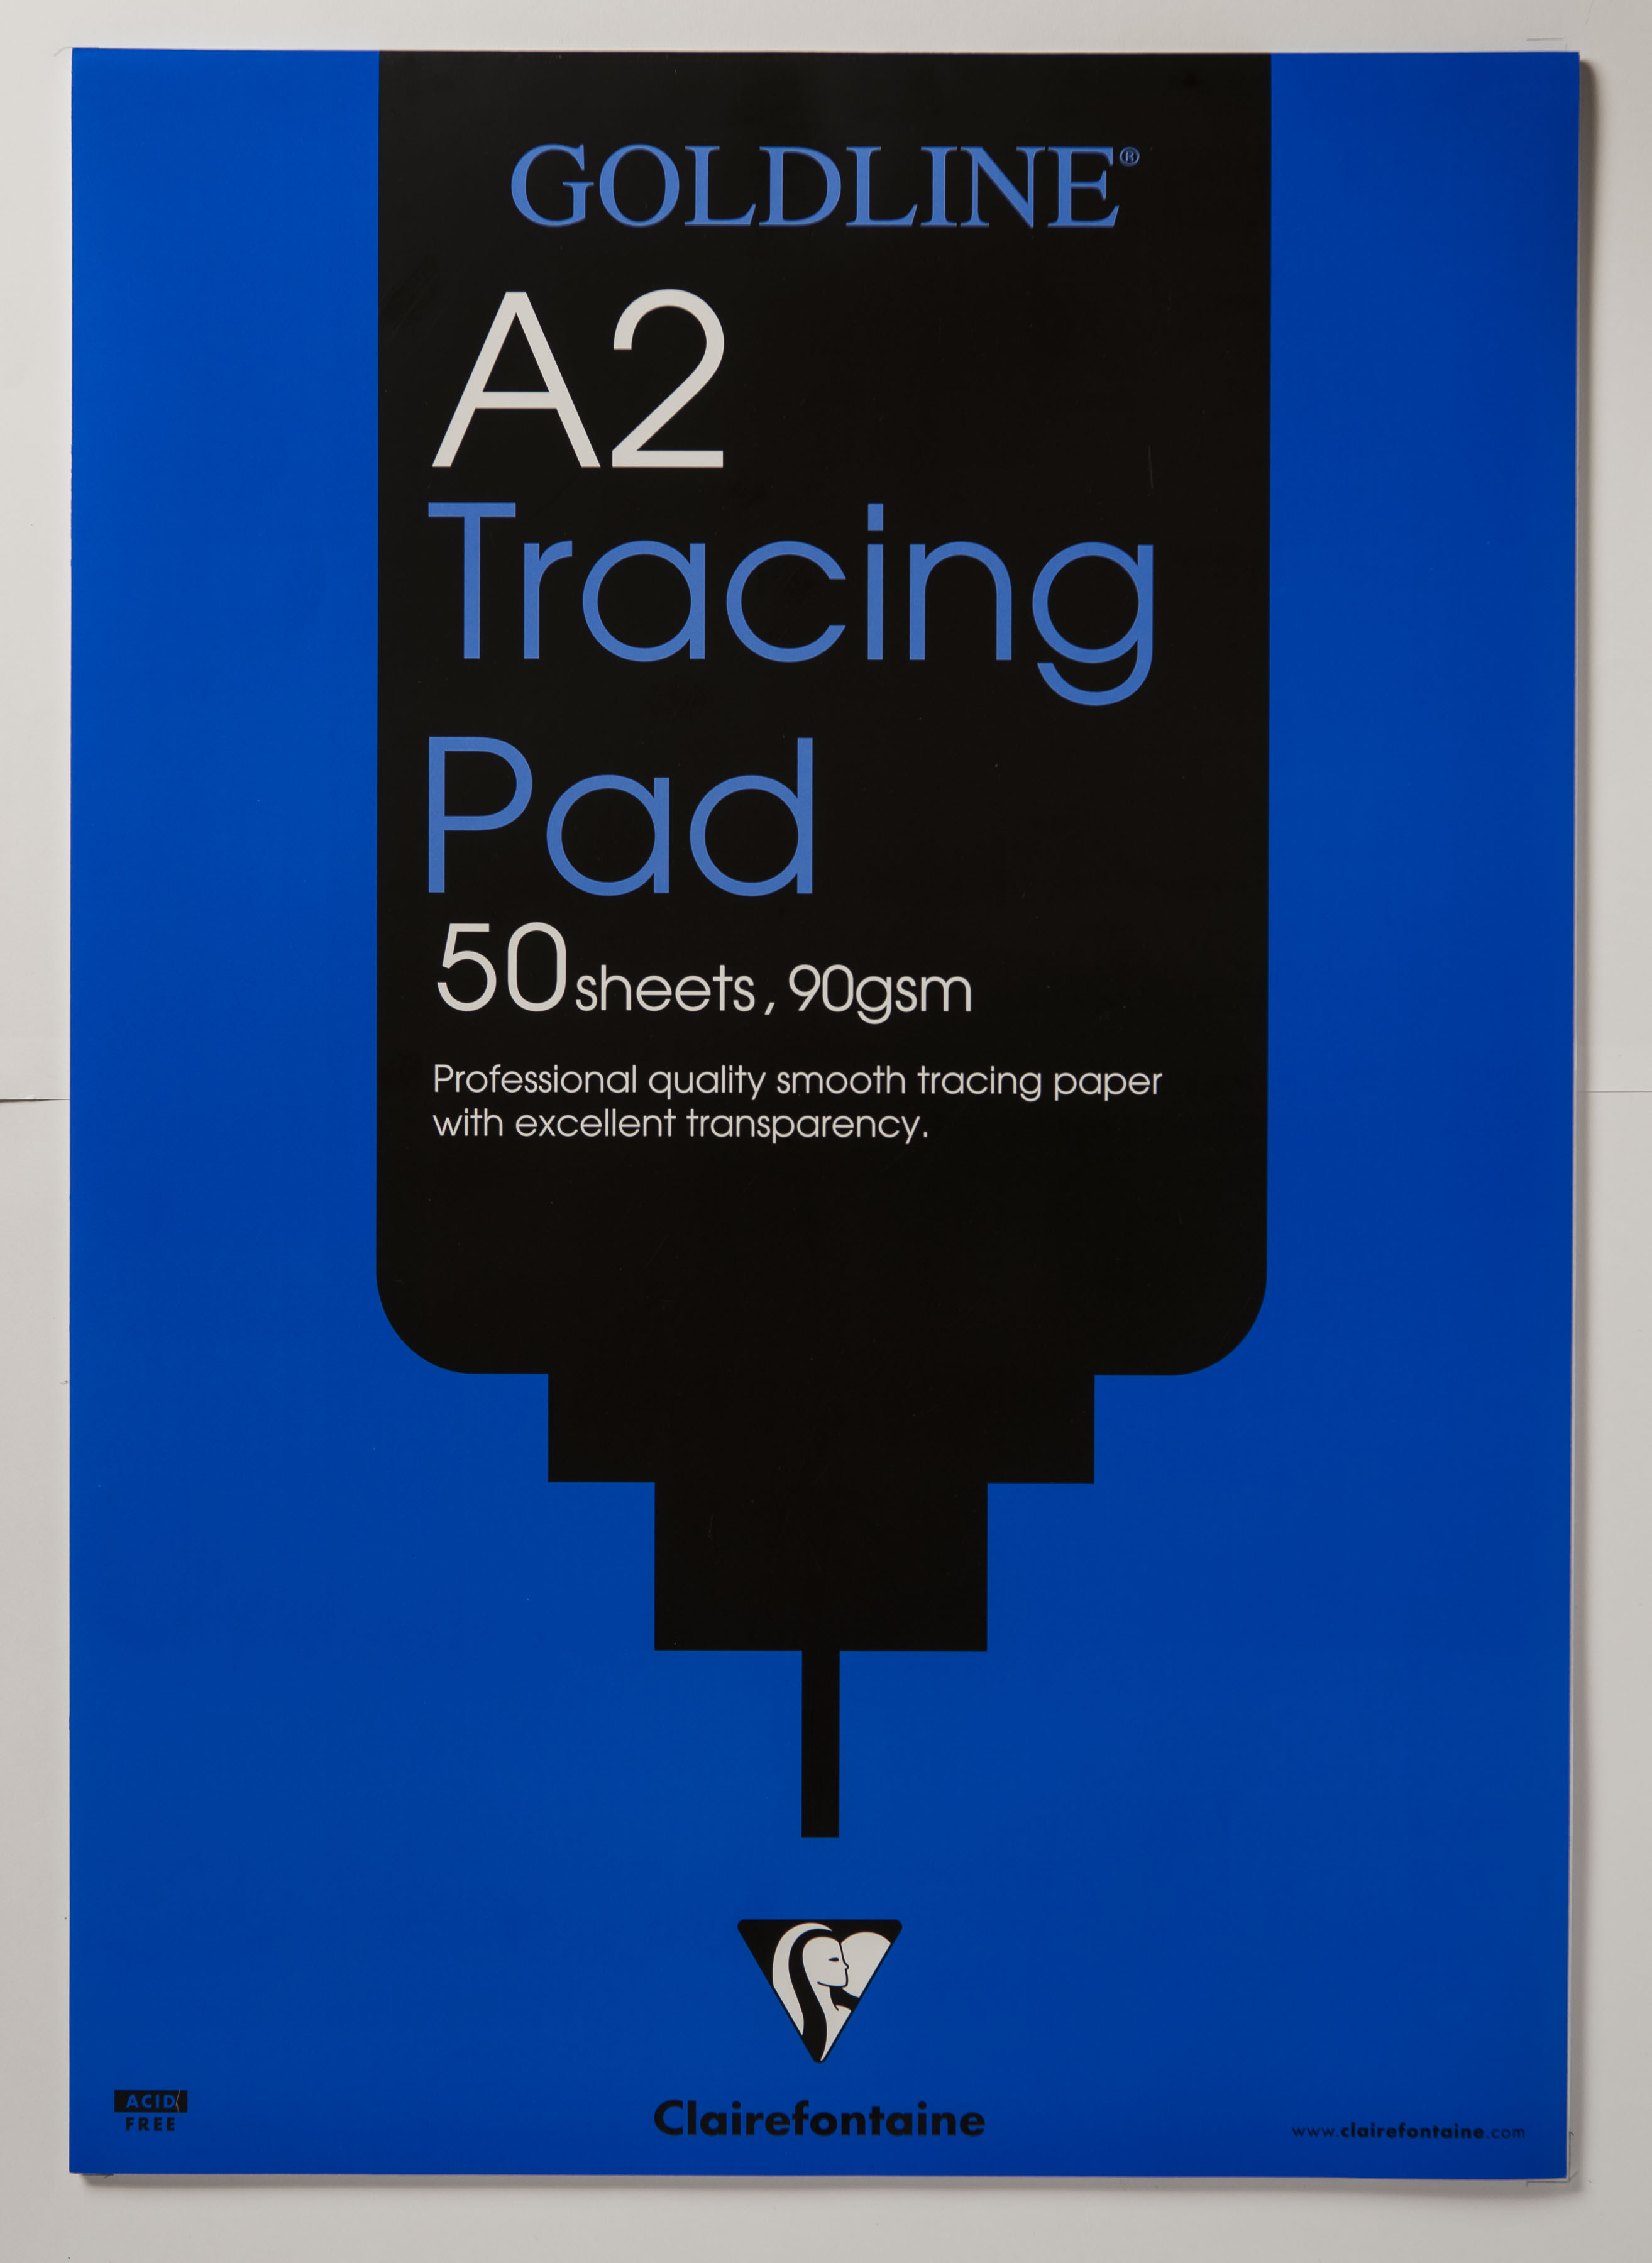 GDline Professional Tracing Pad A2